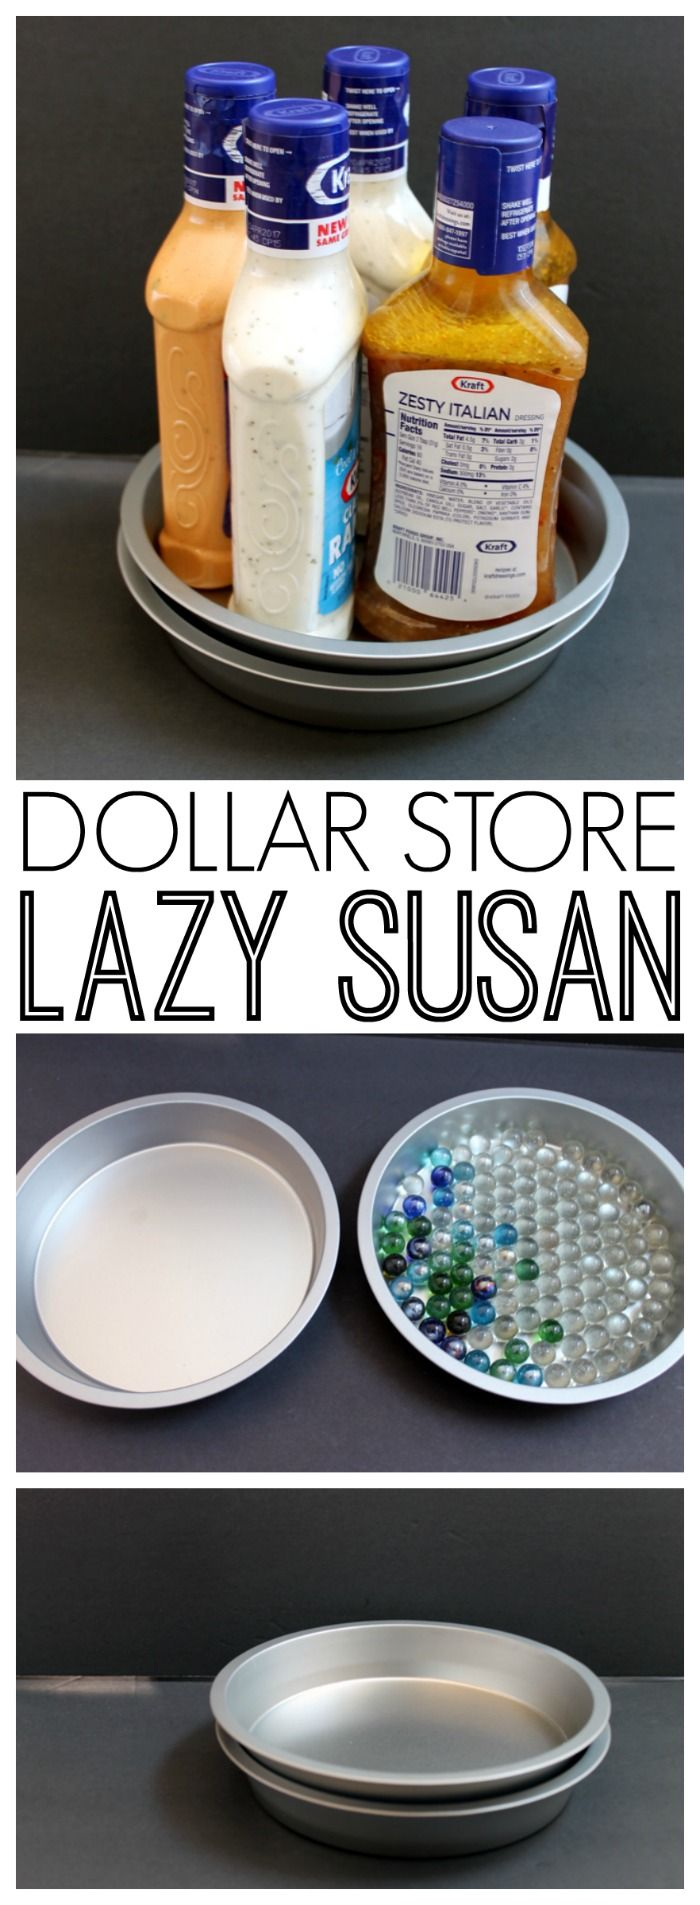 dollar store lazy susan organizing idea gute ideen pinterest schrank haushalt und. Black Bedroom Furniture Sets. Home Design Ideas